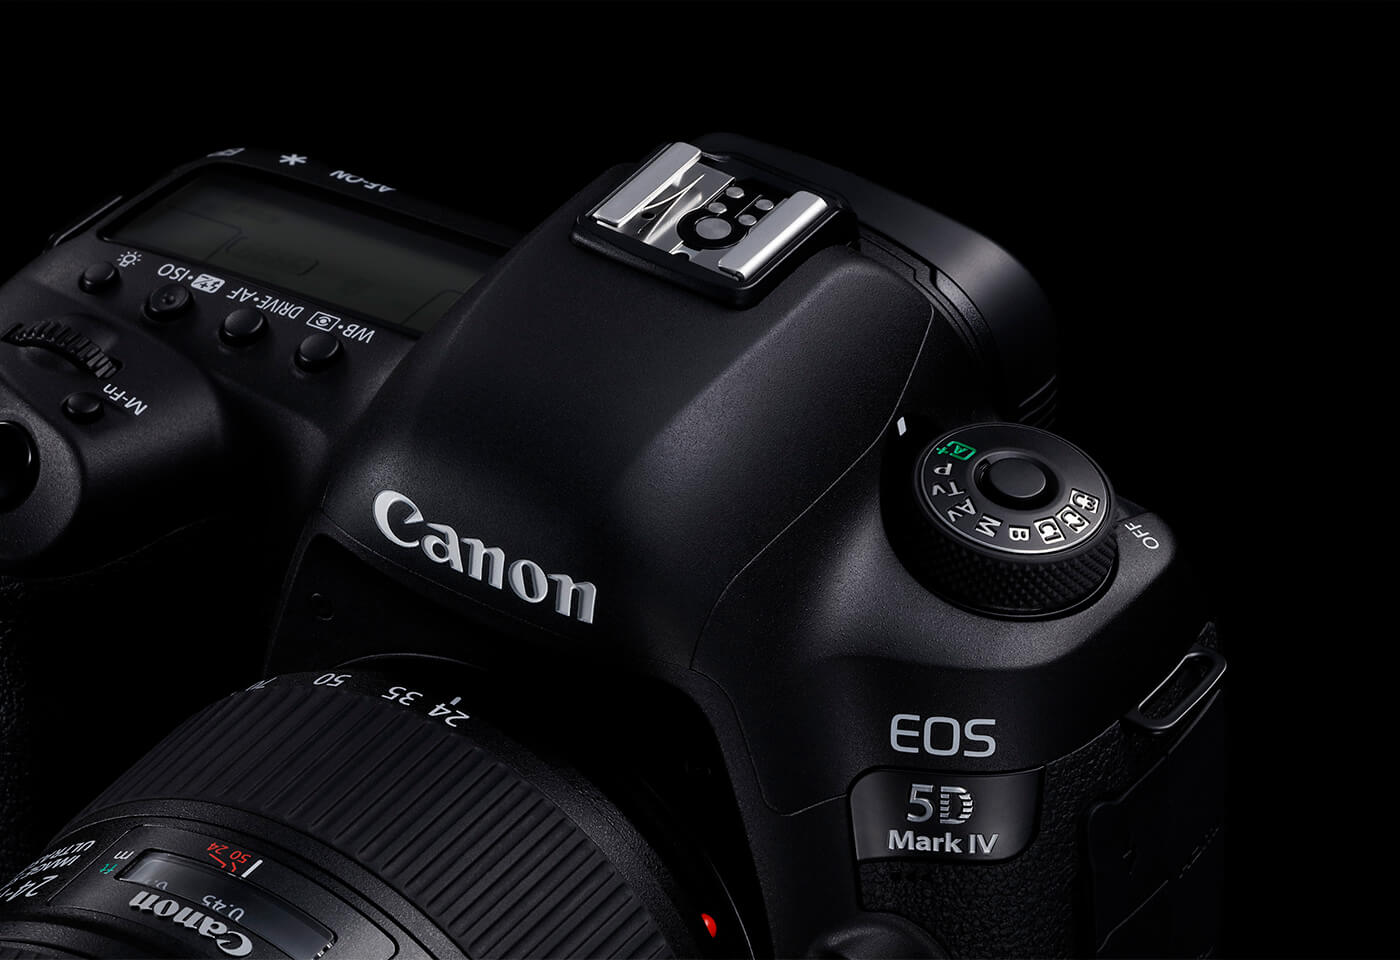 Product image of EOS 5D Mark IV